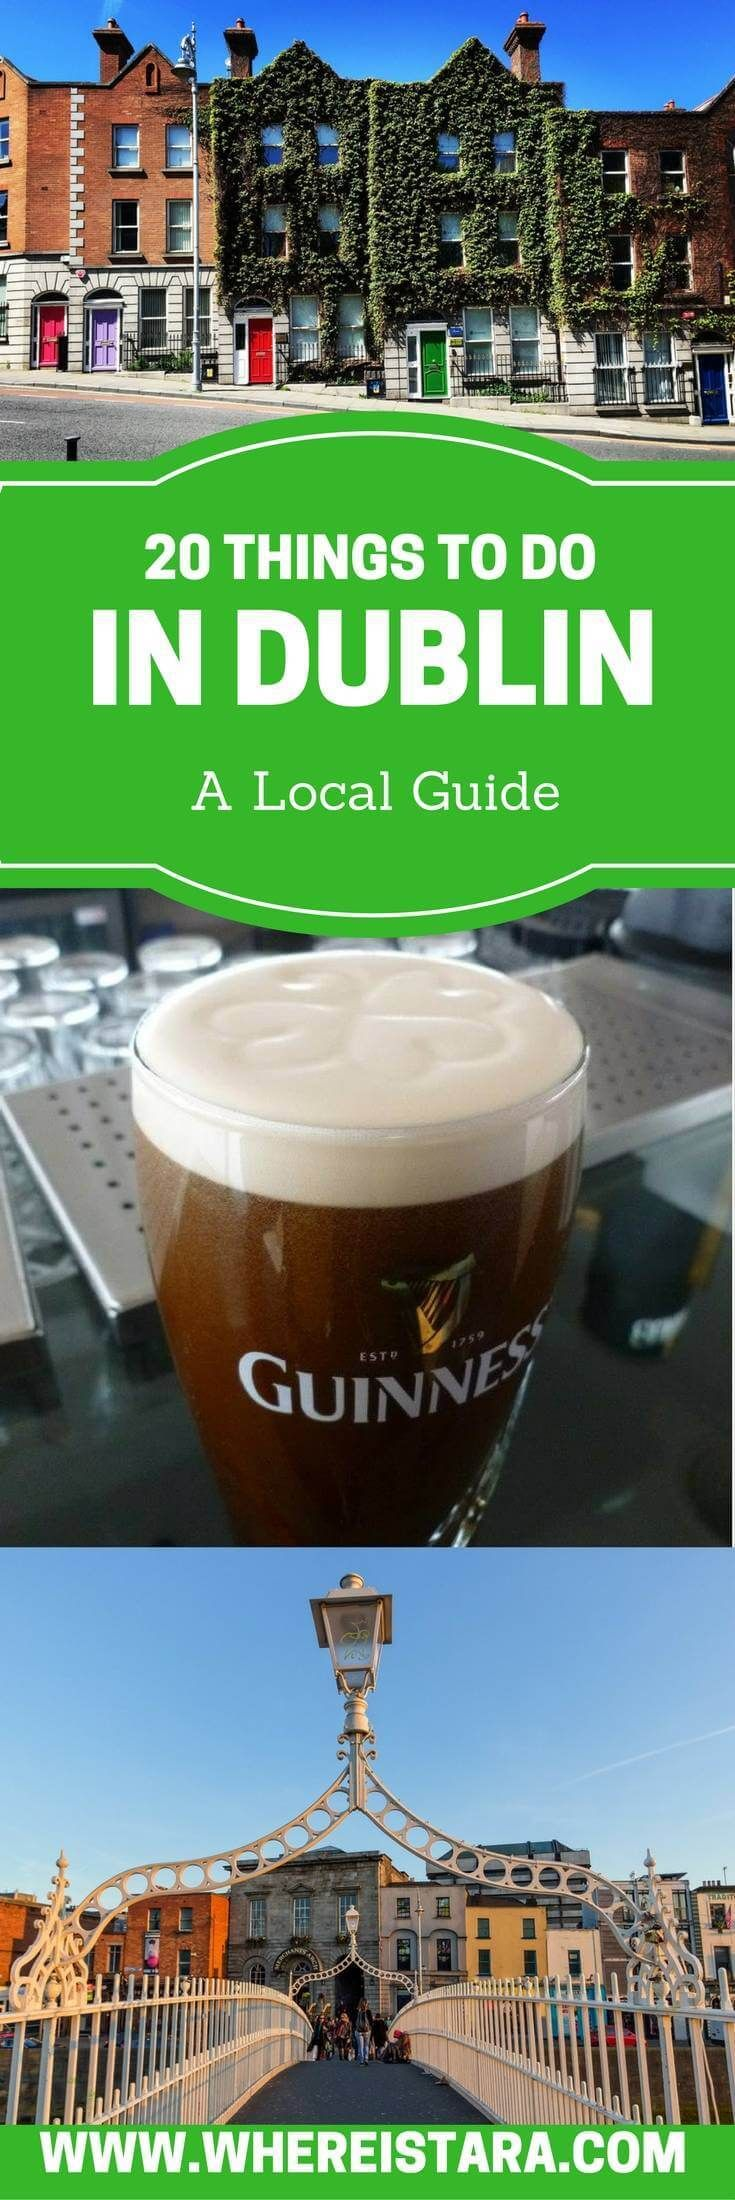 20 Things to do in Dublin as written by a local! The Guinness Storehouse, Jameson Whiskey Tour, Viking Splash tour and more. There are so many things to do in Dublin. This guide will help you to plan your trip to Dublin. Includes ways to skip the queue at popular attractions.